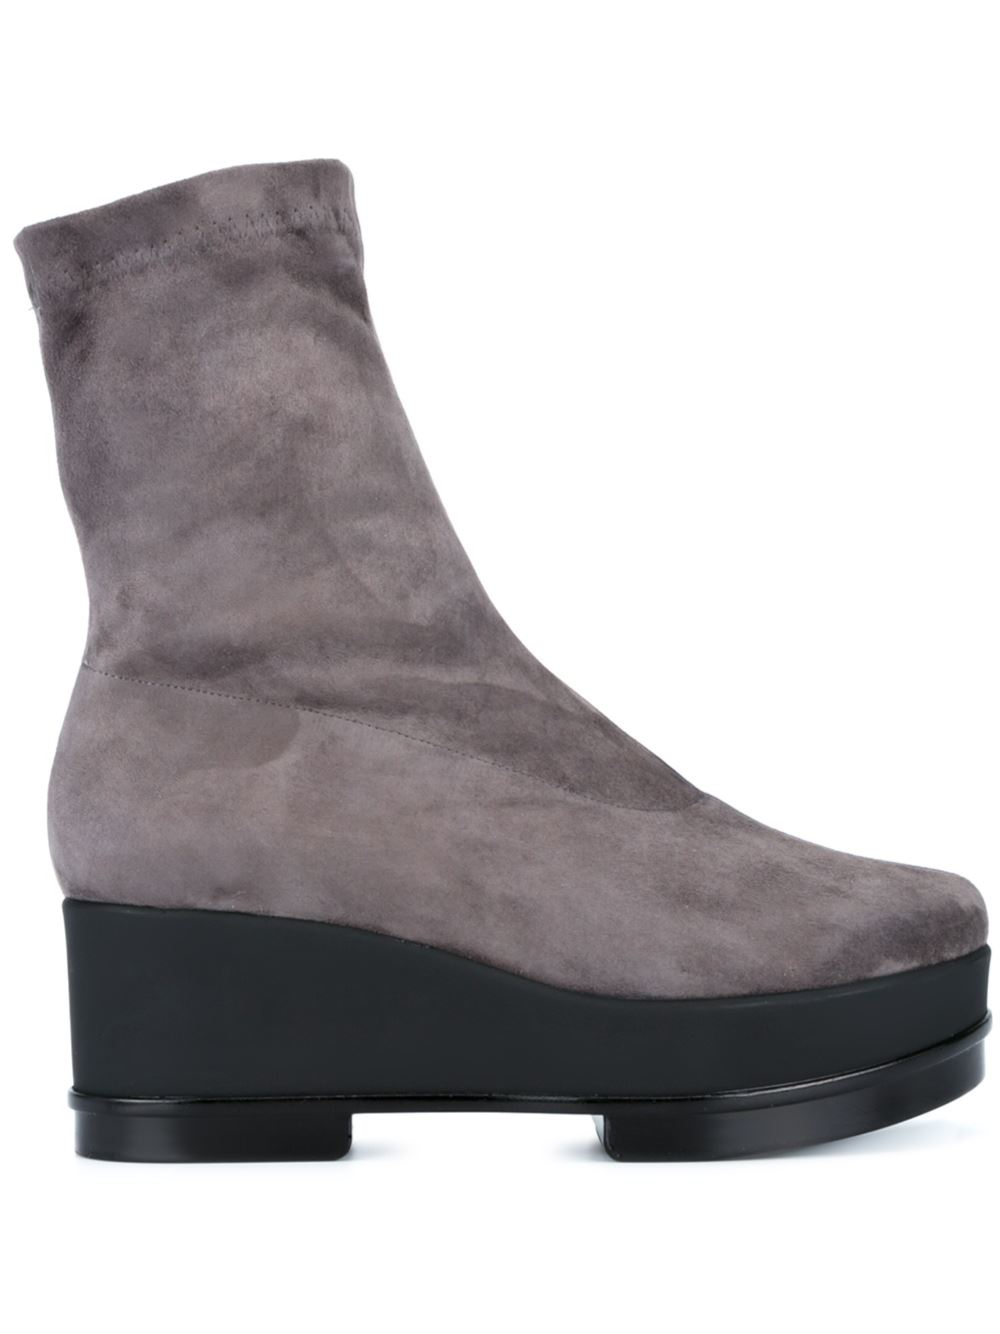 robert clergerie suede wedge boots in gray lyst